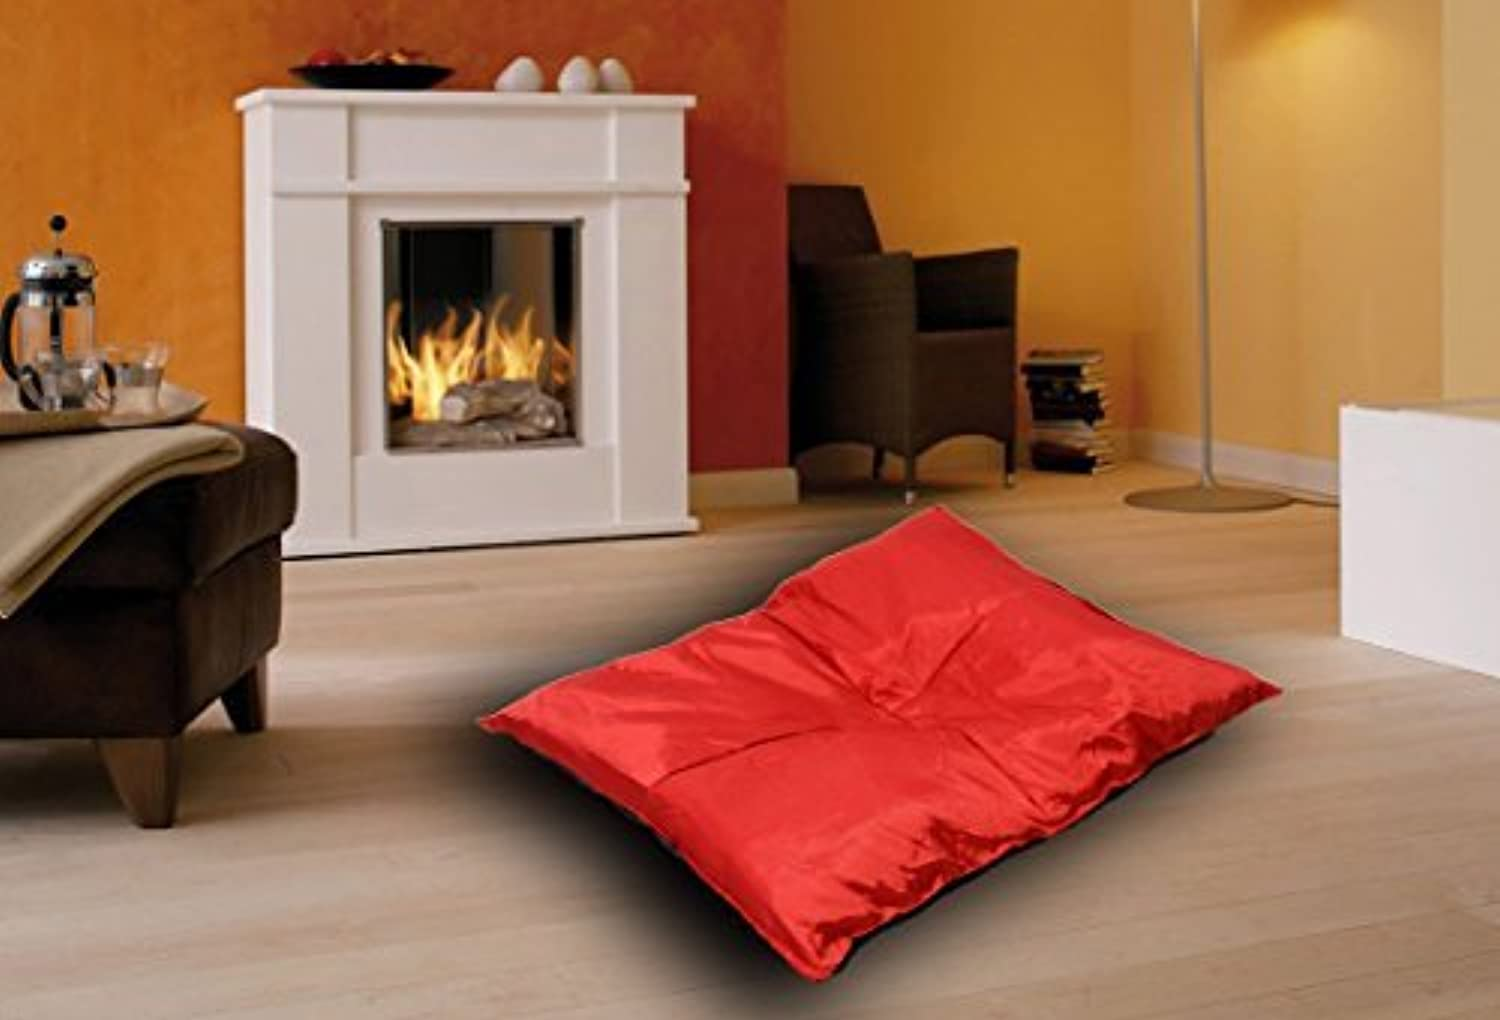 Best For Pets Orthopedic Dog Bed with TüV Quality KISS 7 Large Dog Pillow OrthoMEDIC VISCO CUSHION (XL84x65x4 cm, Red)